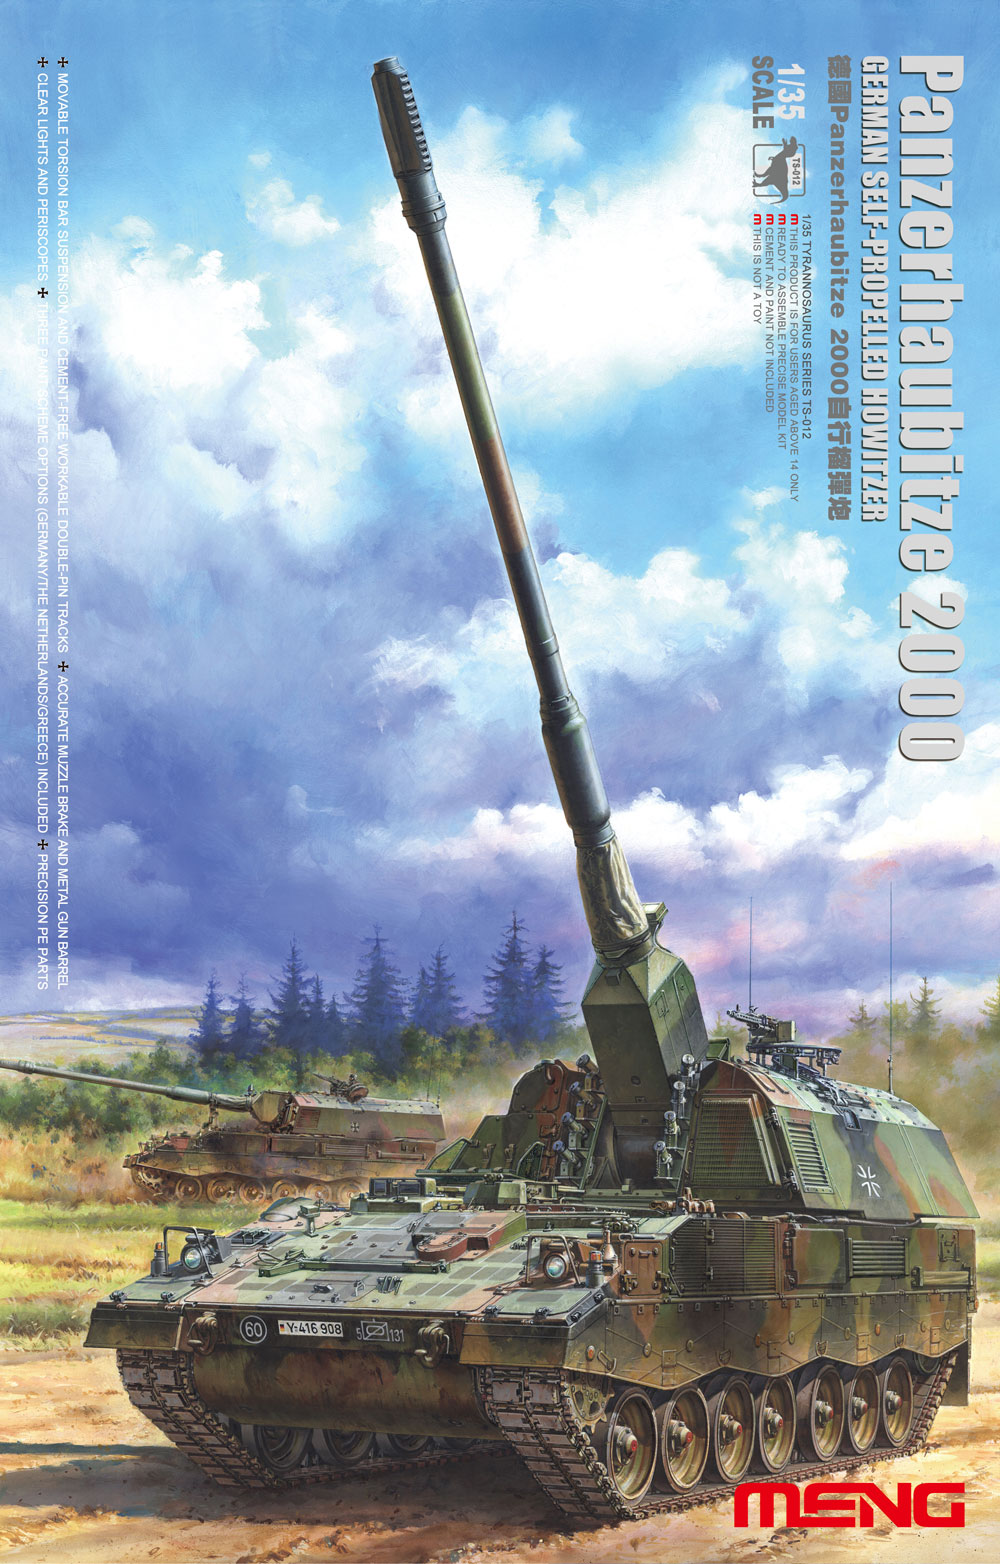 Meng 1/35 GERMAN Panzerhaubitze 2000 SELF-PROPELLED HOWITZER